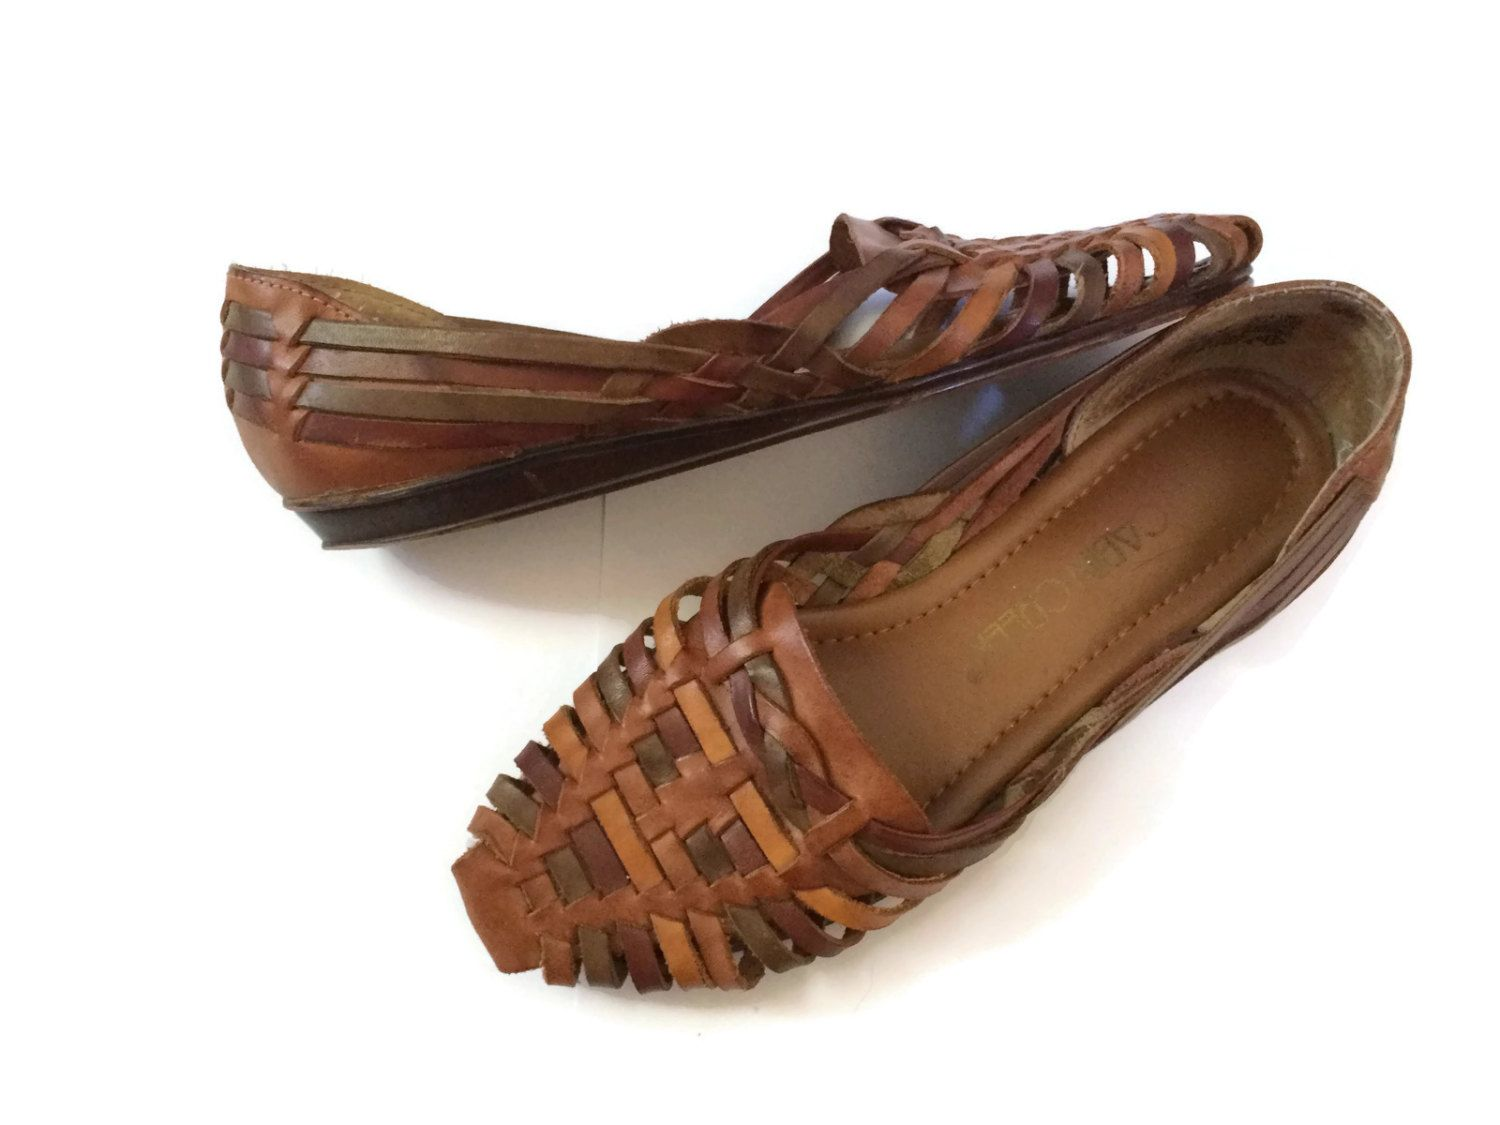 a80deff39 Huarache Sandals Woven Leather Size 6.5 6 1 2 90s Flats Summer Shoes Brown  Braided Mini Wedge Heel Boho Hippie Hipster by GoodLuxeVintage on Etsy